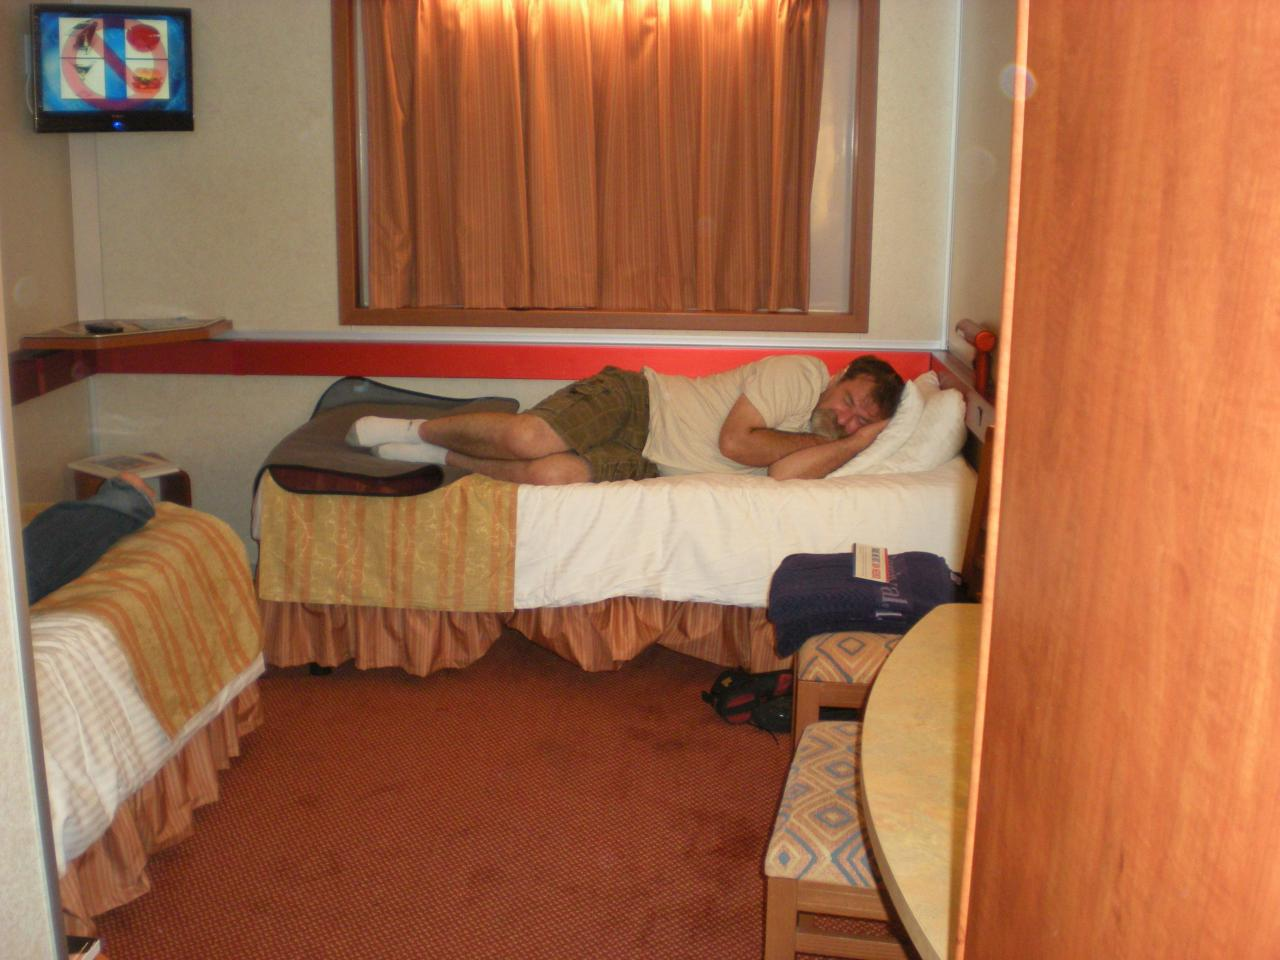 Carnival sensation stateroom layout pictures to pin on pinterest pinsdaddy for Carnival sensation interior rooms